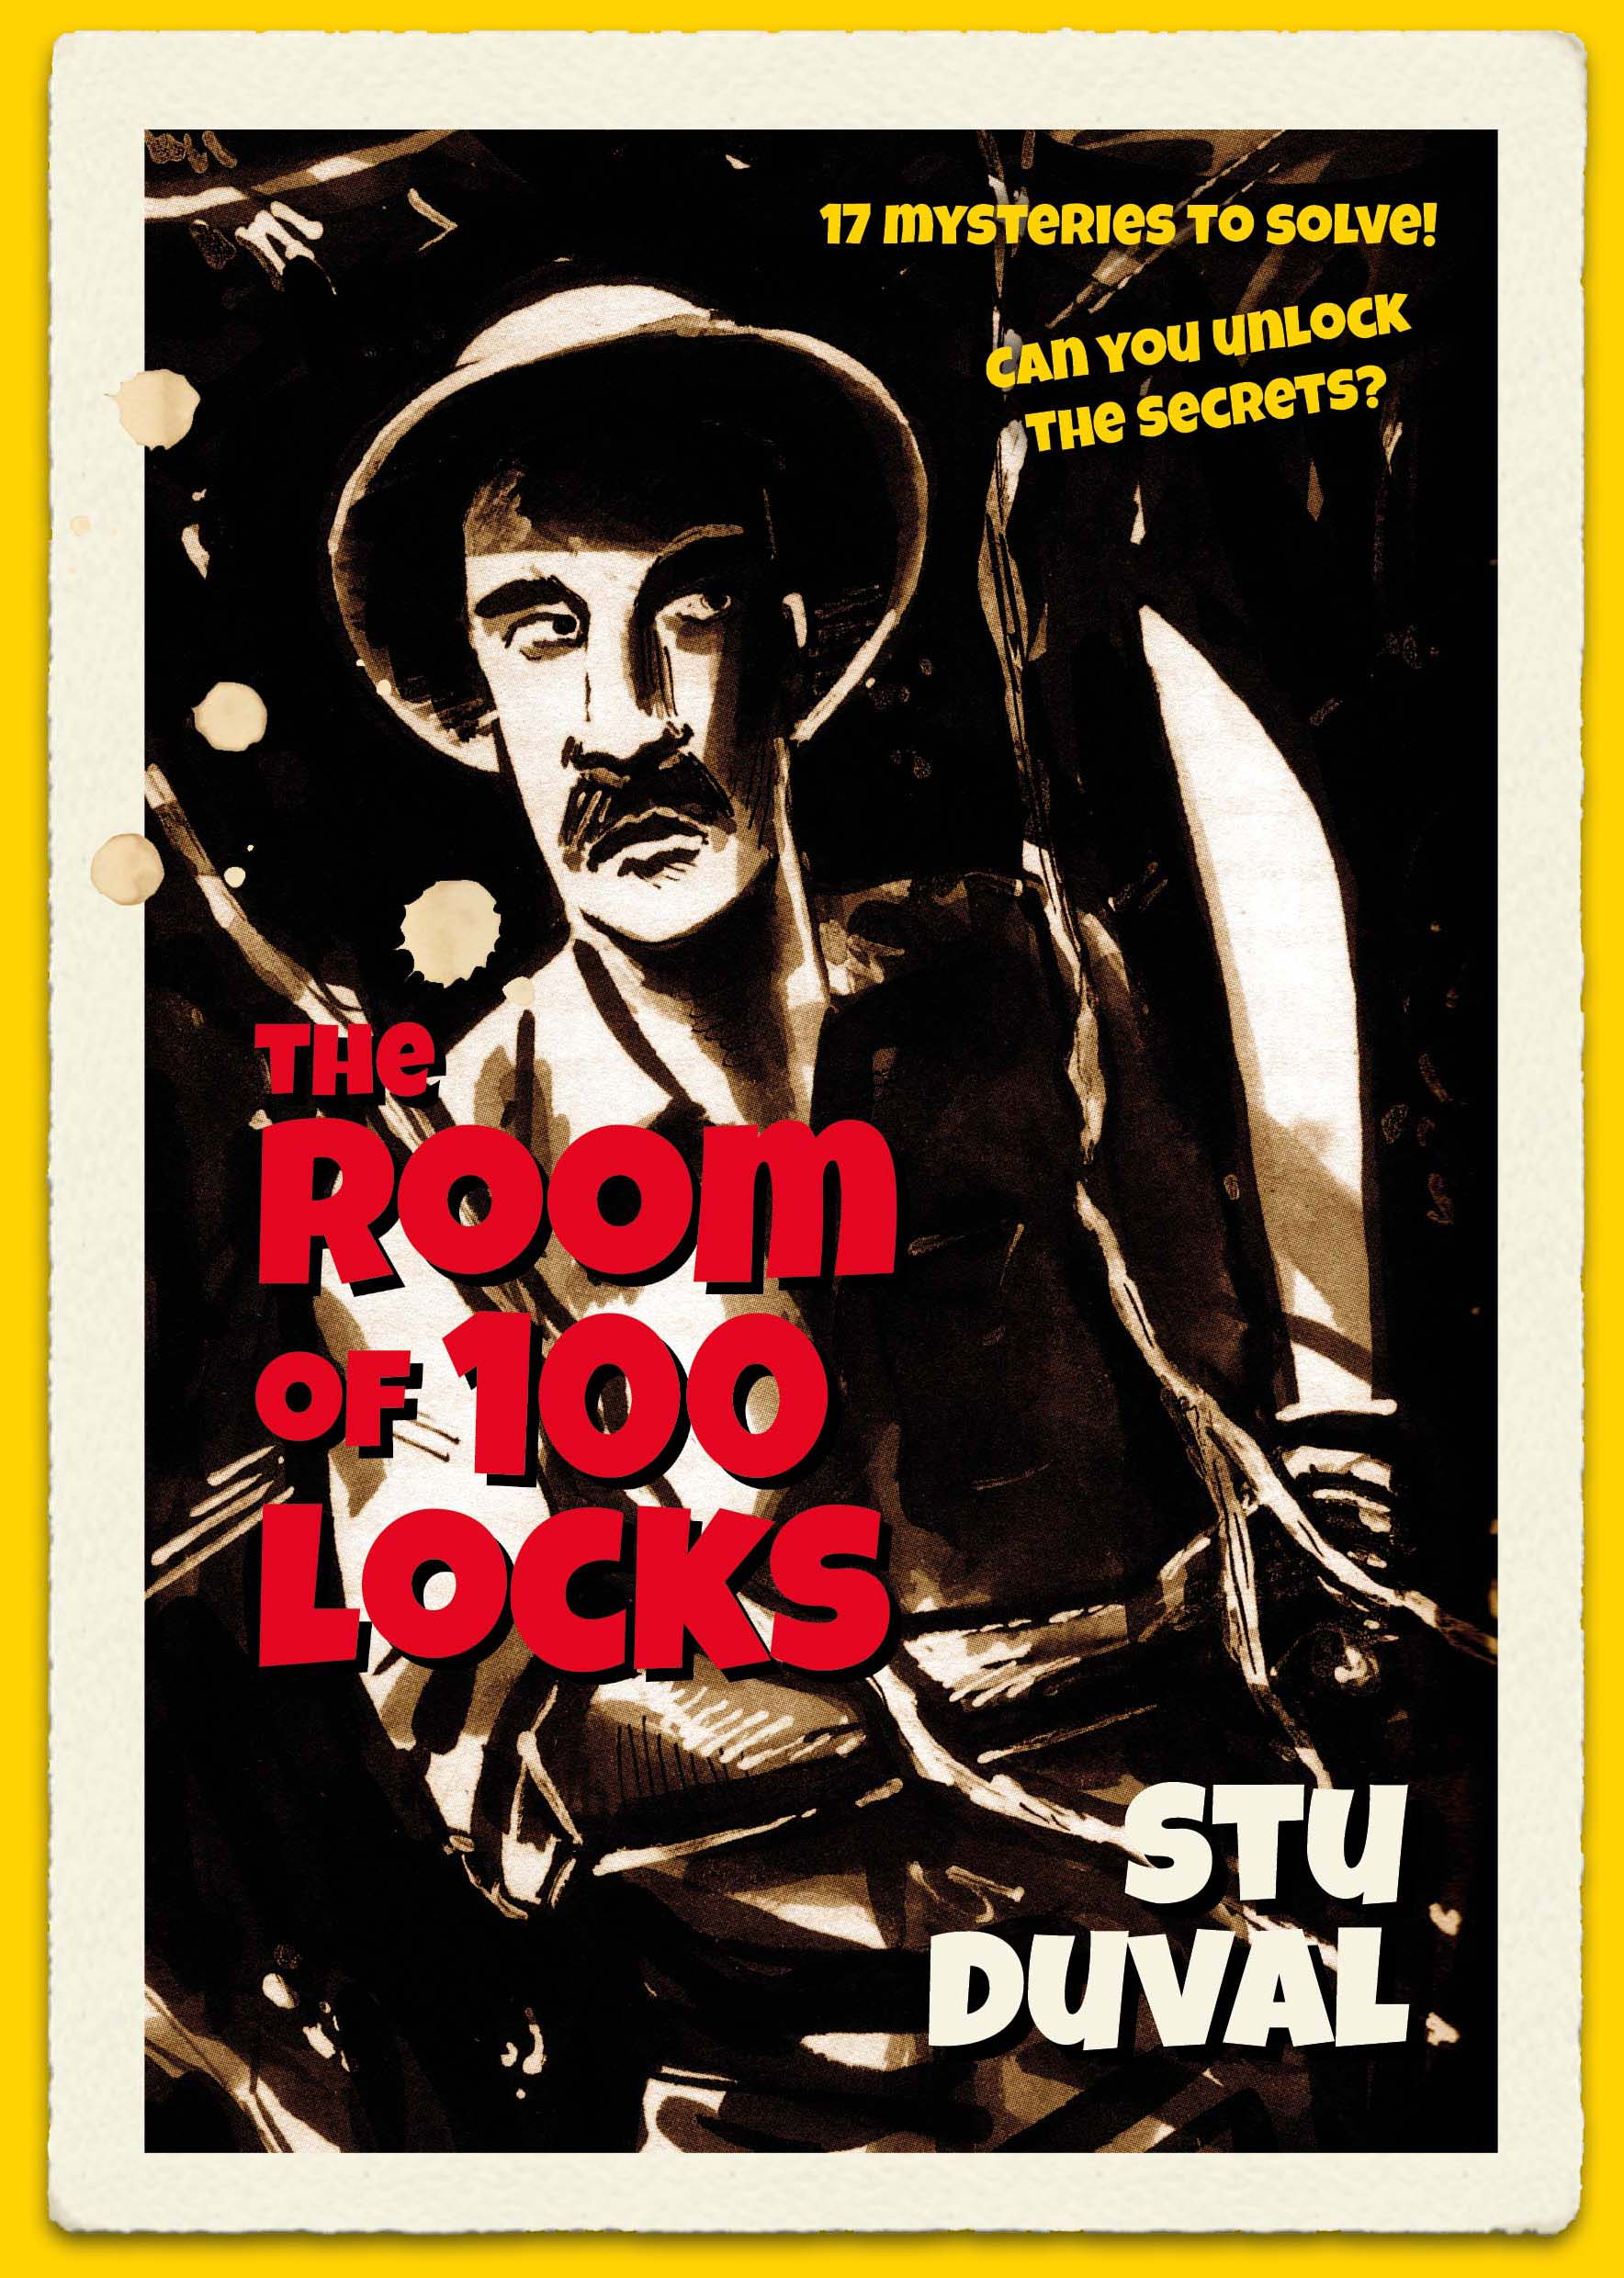 The Room of 100 Locks